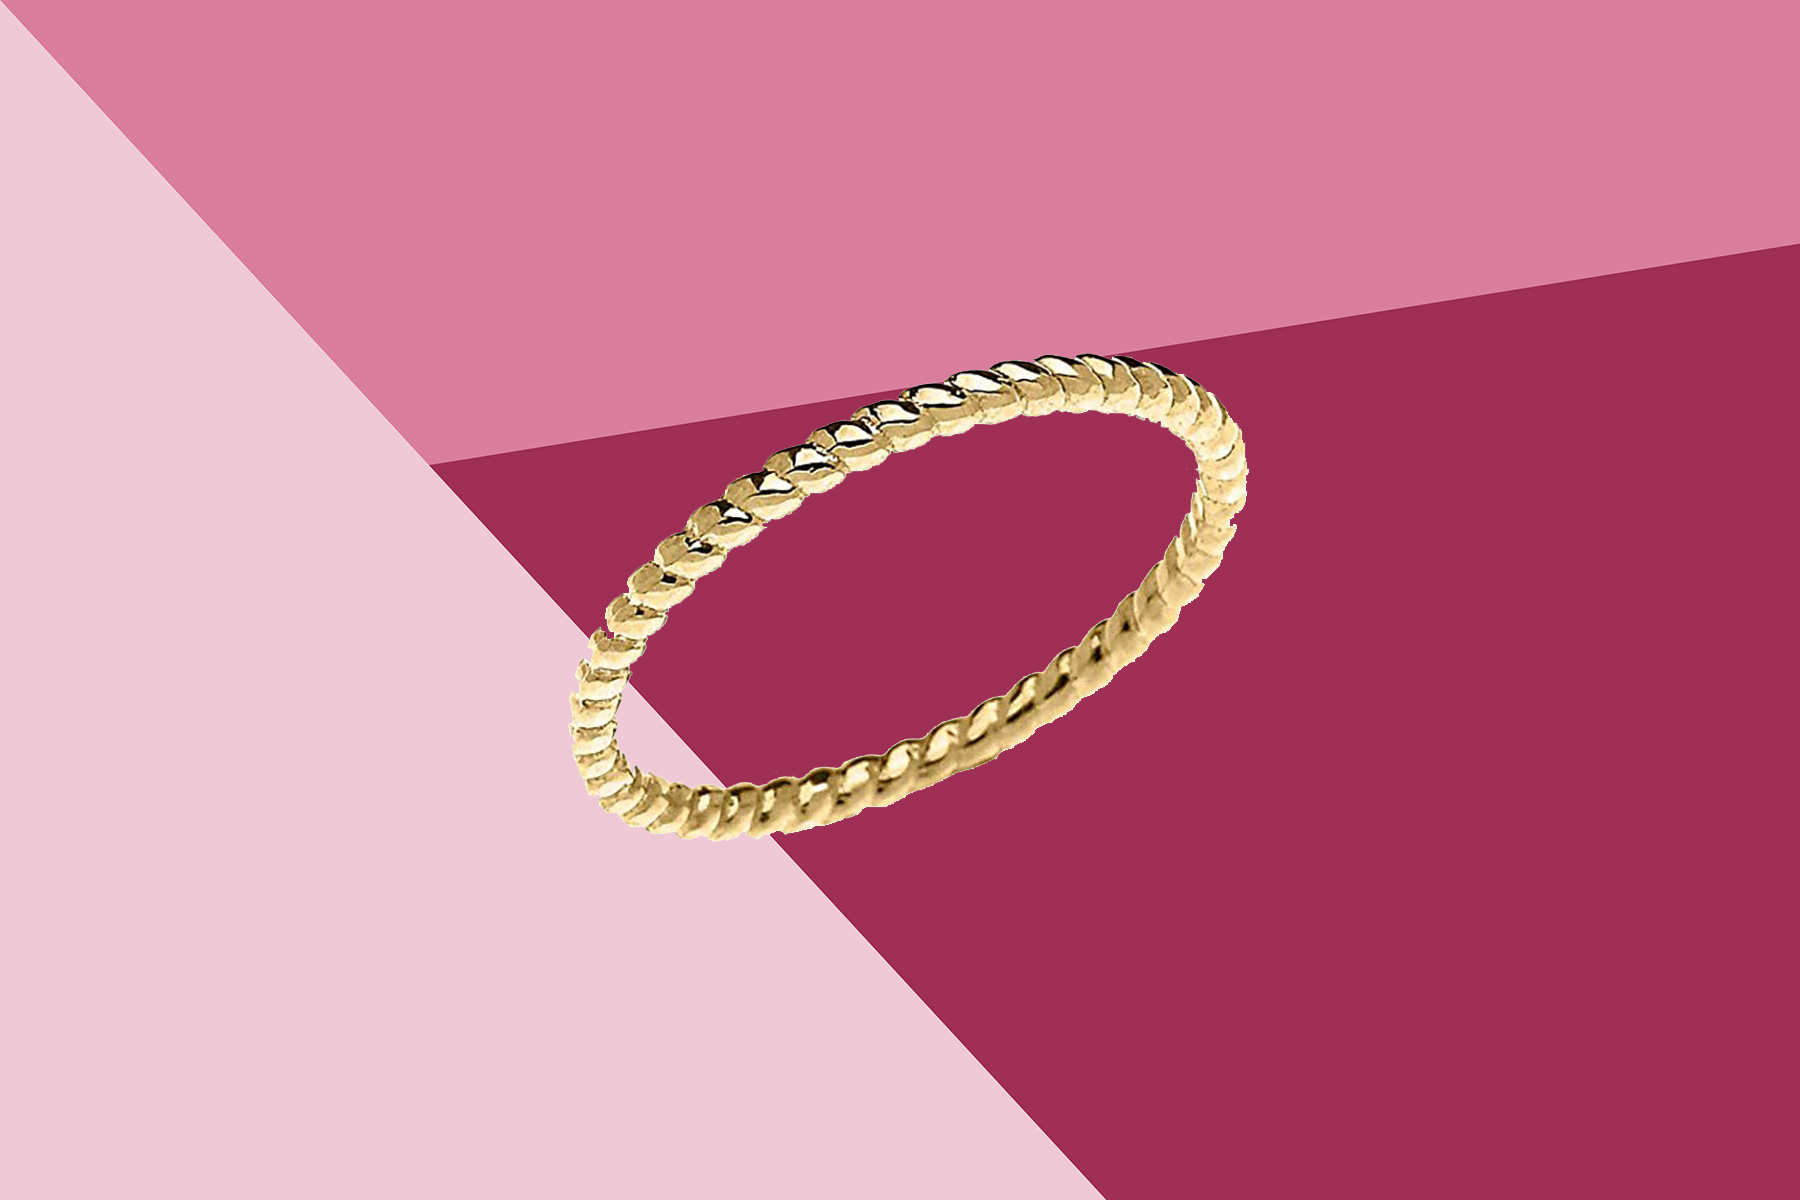 The Best Gold Jewelry You Can Buy Online, According to Customer Reviews